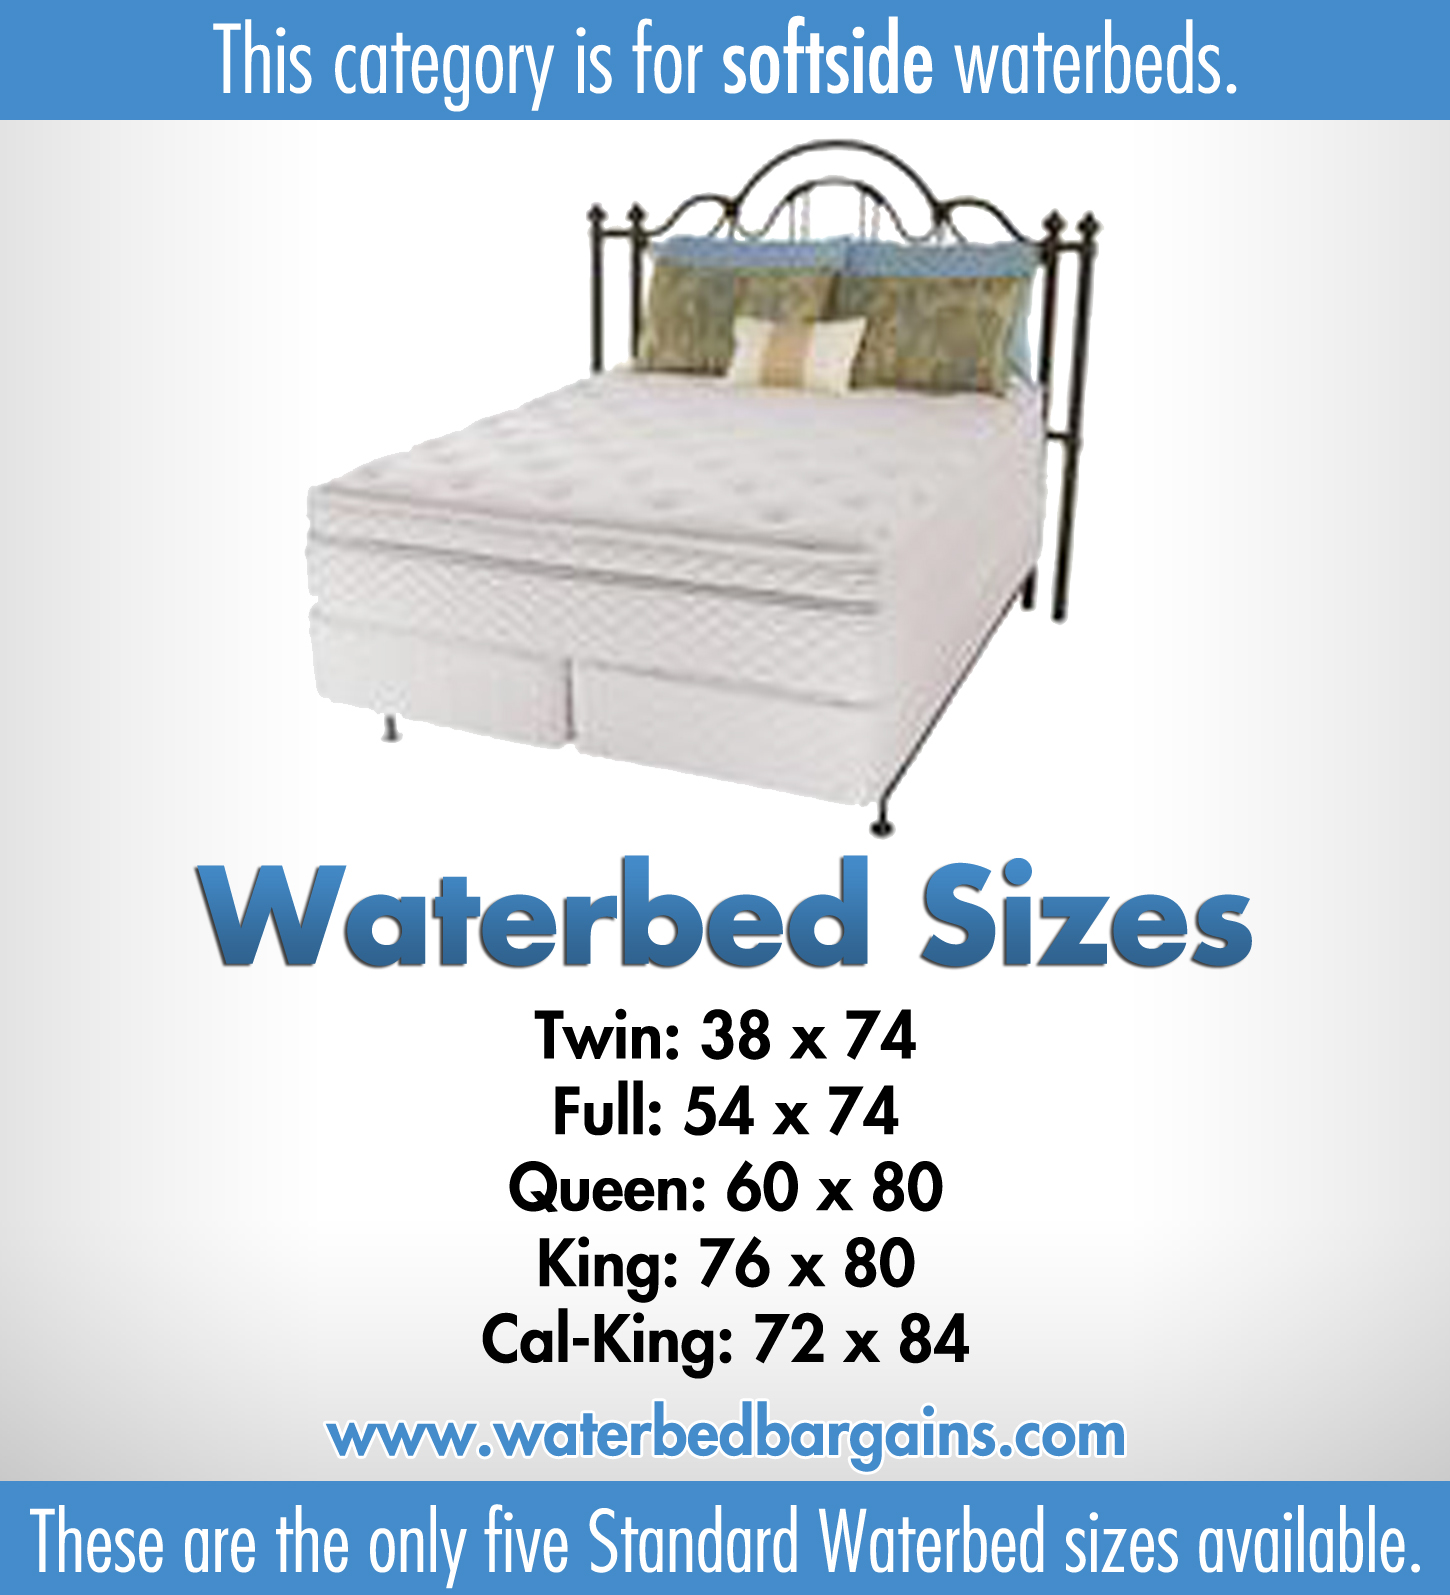 Softside waterbed   Waterbed with memory foam layer   Sizes: Super Single Queen King